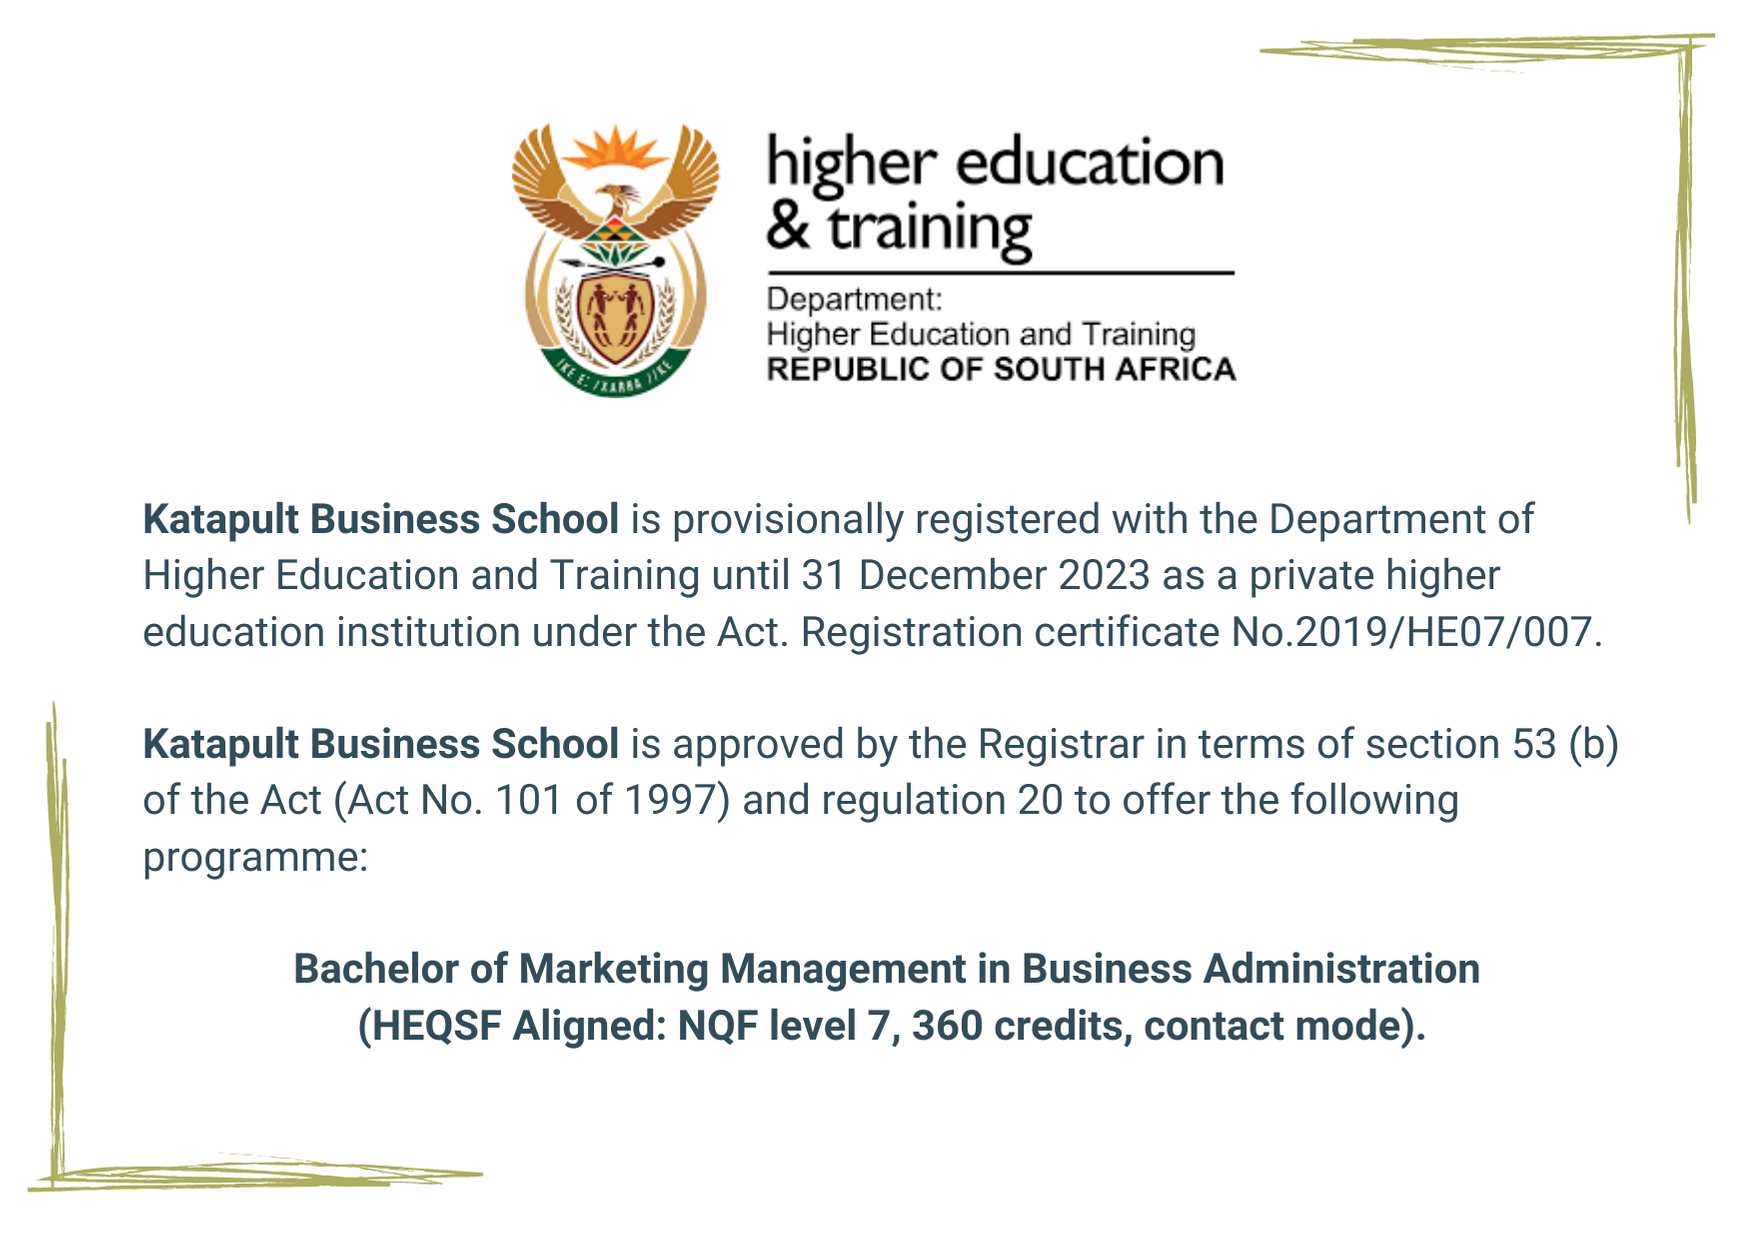 Katapult Business School is provisionally registered with the Department of Higher Education and Training until 31 December 2023 as a private higher education institution under the Act. Registration certificate No.2019/HE07/007. Katapult Business School is approved by the Registrar in terms of section 53 (b) of the Act (Act No. 101 of 1997) and regulation 20 to offer the following programme: Bachelor of Marketing Management in Business Administration (HEQSF Aligned: NQF level 7, 360 credits, contact mode)